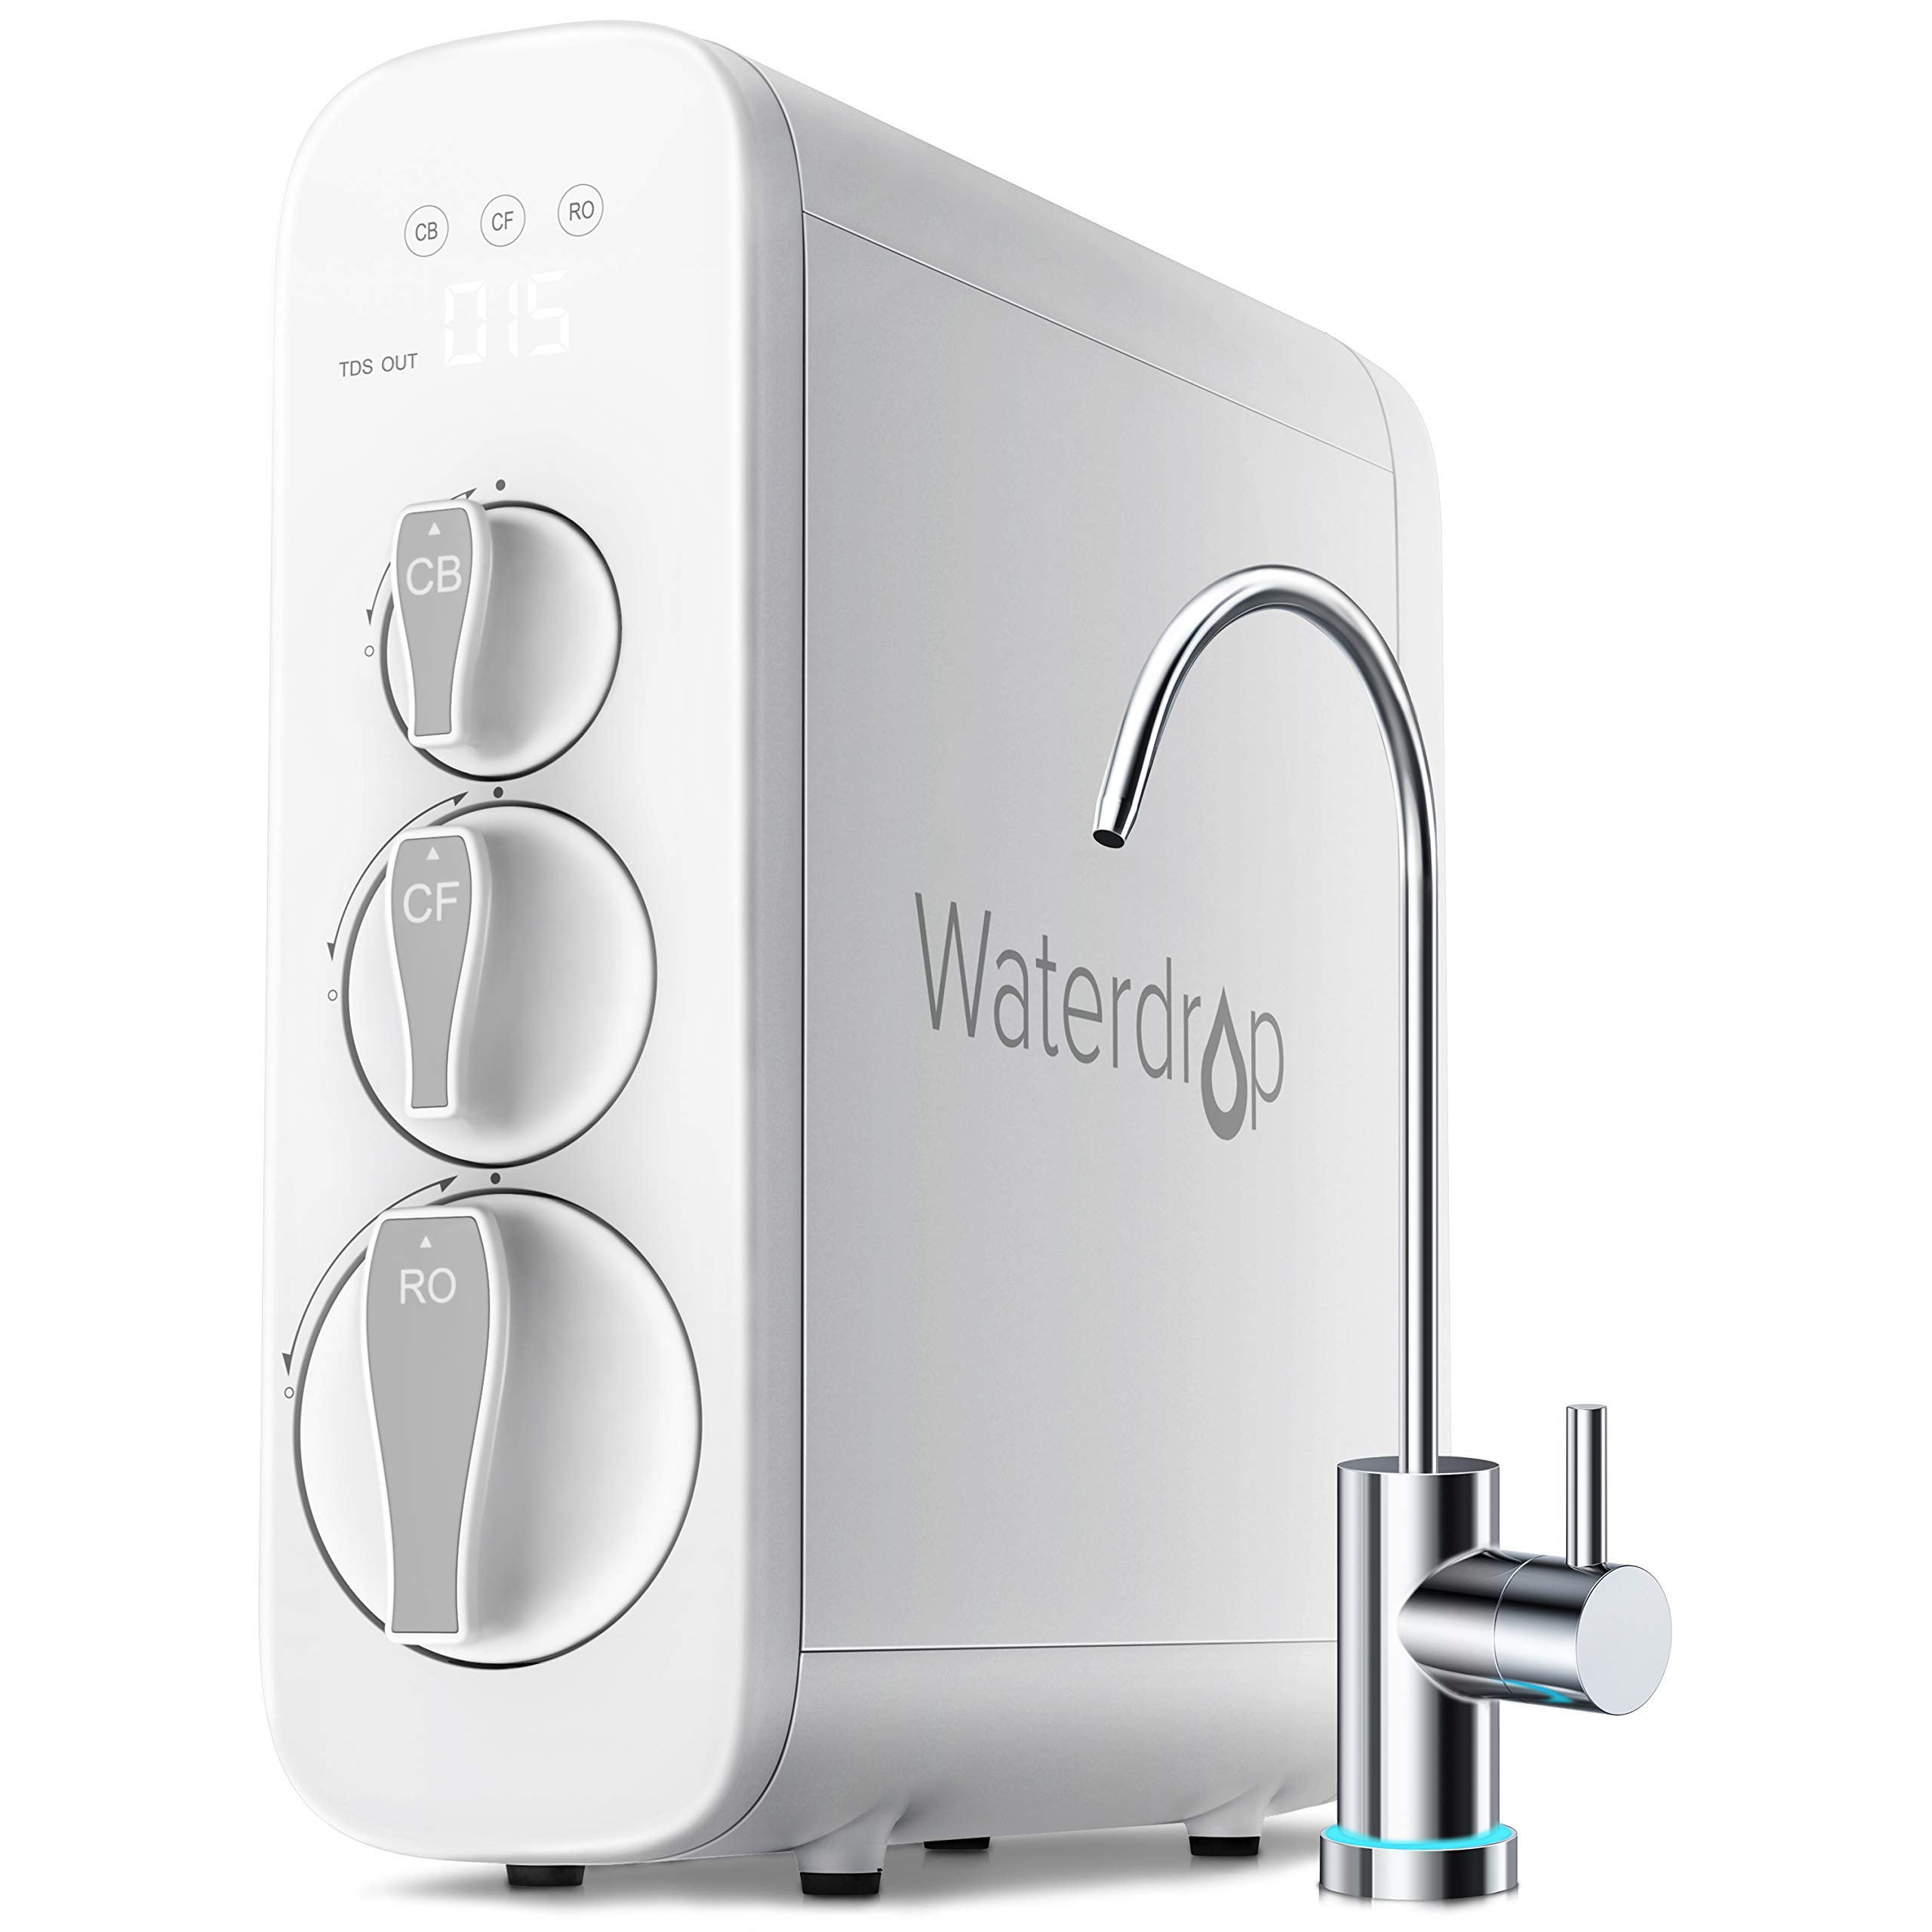 Waterdrop RO Reverse Osmosis Water Filtration System, TDS Reduction, 400 GPD Fast Flow, Tankless, Smart Faucet, UL Listed Power Cord, 1: 1 Drain Ratio, USA Tech Support by Waterdrop